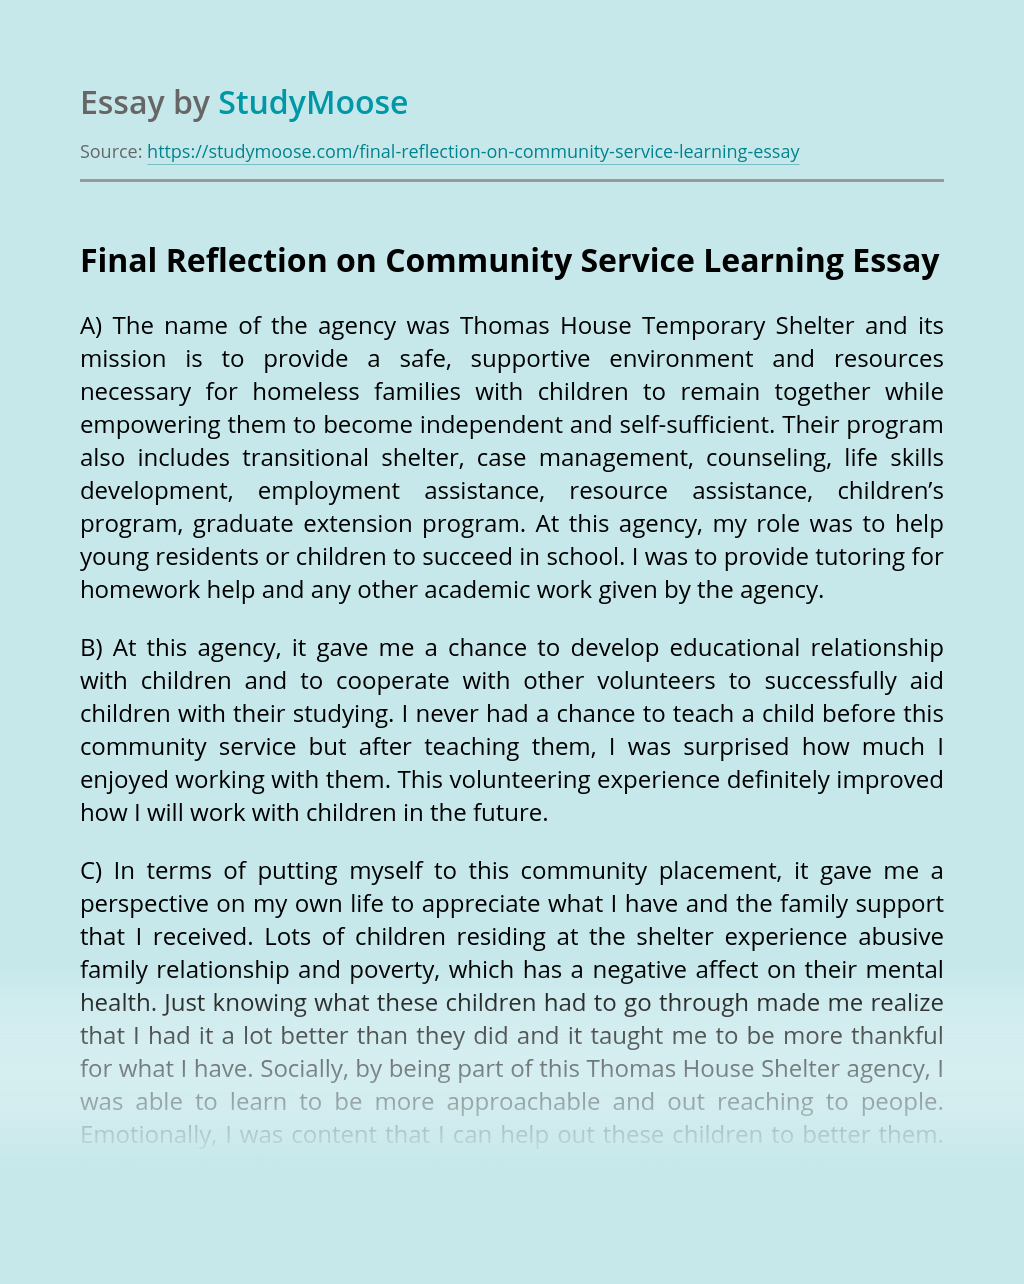 Final Reflection on Community Service Learning